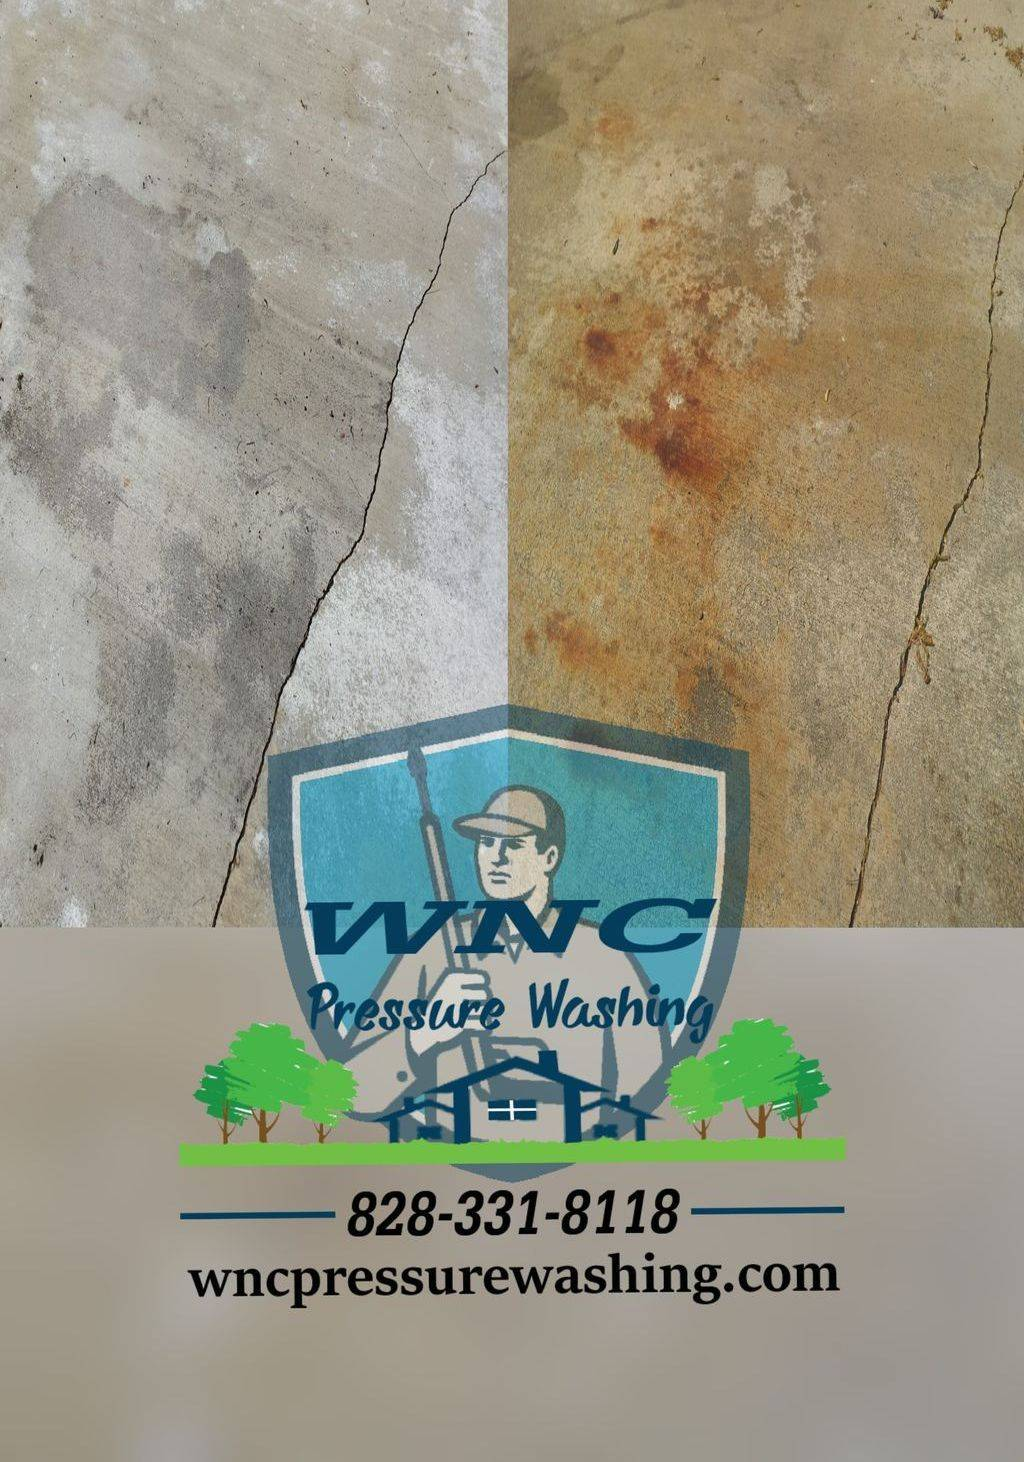 Rust removal in WNC, Rust removal,pressure washing waynesville, commercial pressure washing, pressure washing